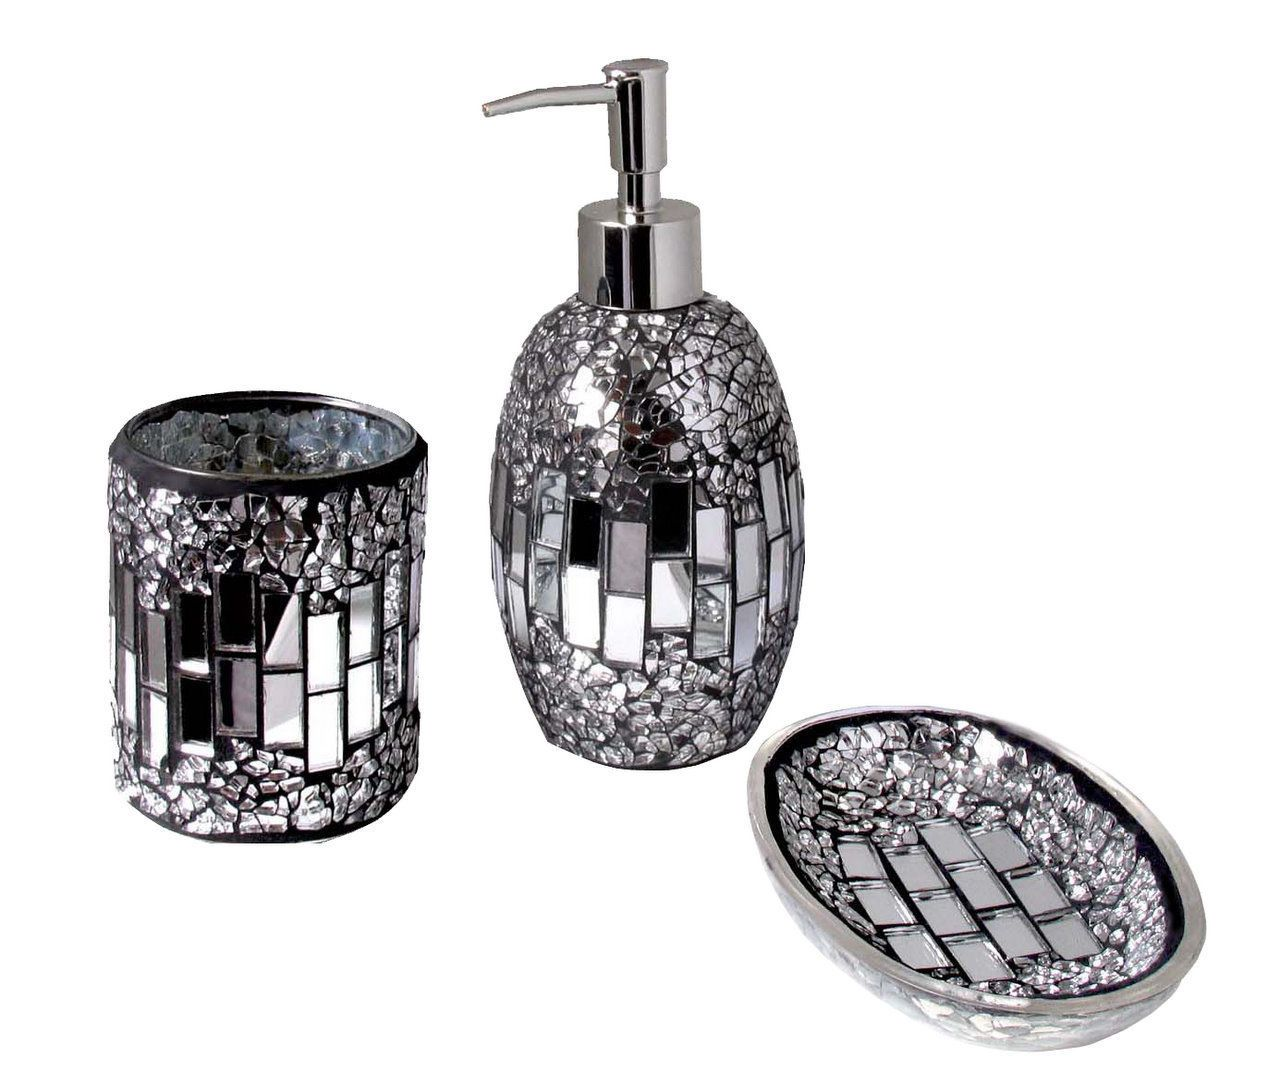 silver sparkle bathroom accessories. Glitter Bathroom Accessories  Silver Black Sparkle Mosaic Glass Tile Accessory Set Deco 3pc Modern